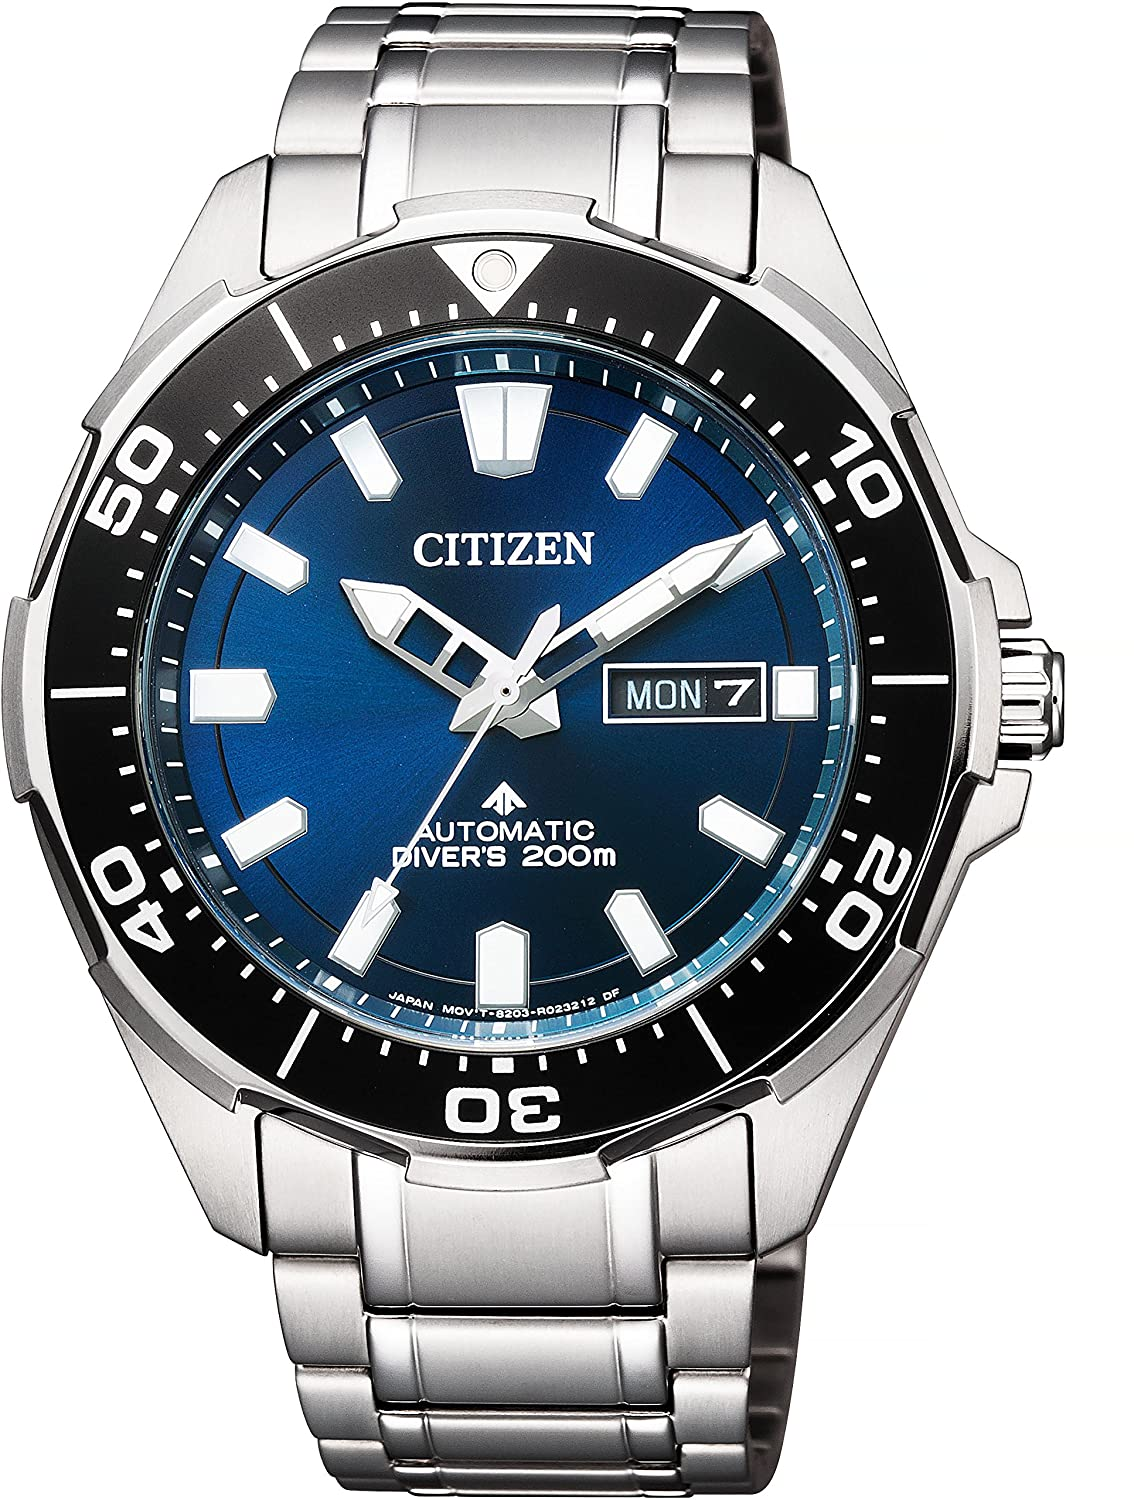 Citizen Eco-Drive Mens Automatic Day-Date Wrist Watch Analog 46 mm Round Blue Dial with Sapphire Crystal and Silver Steel Band 200m Water Resistant Business Genuine Luxury Watches - for Men